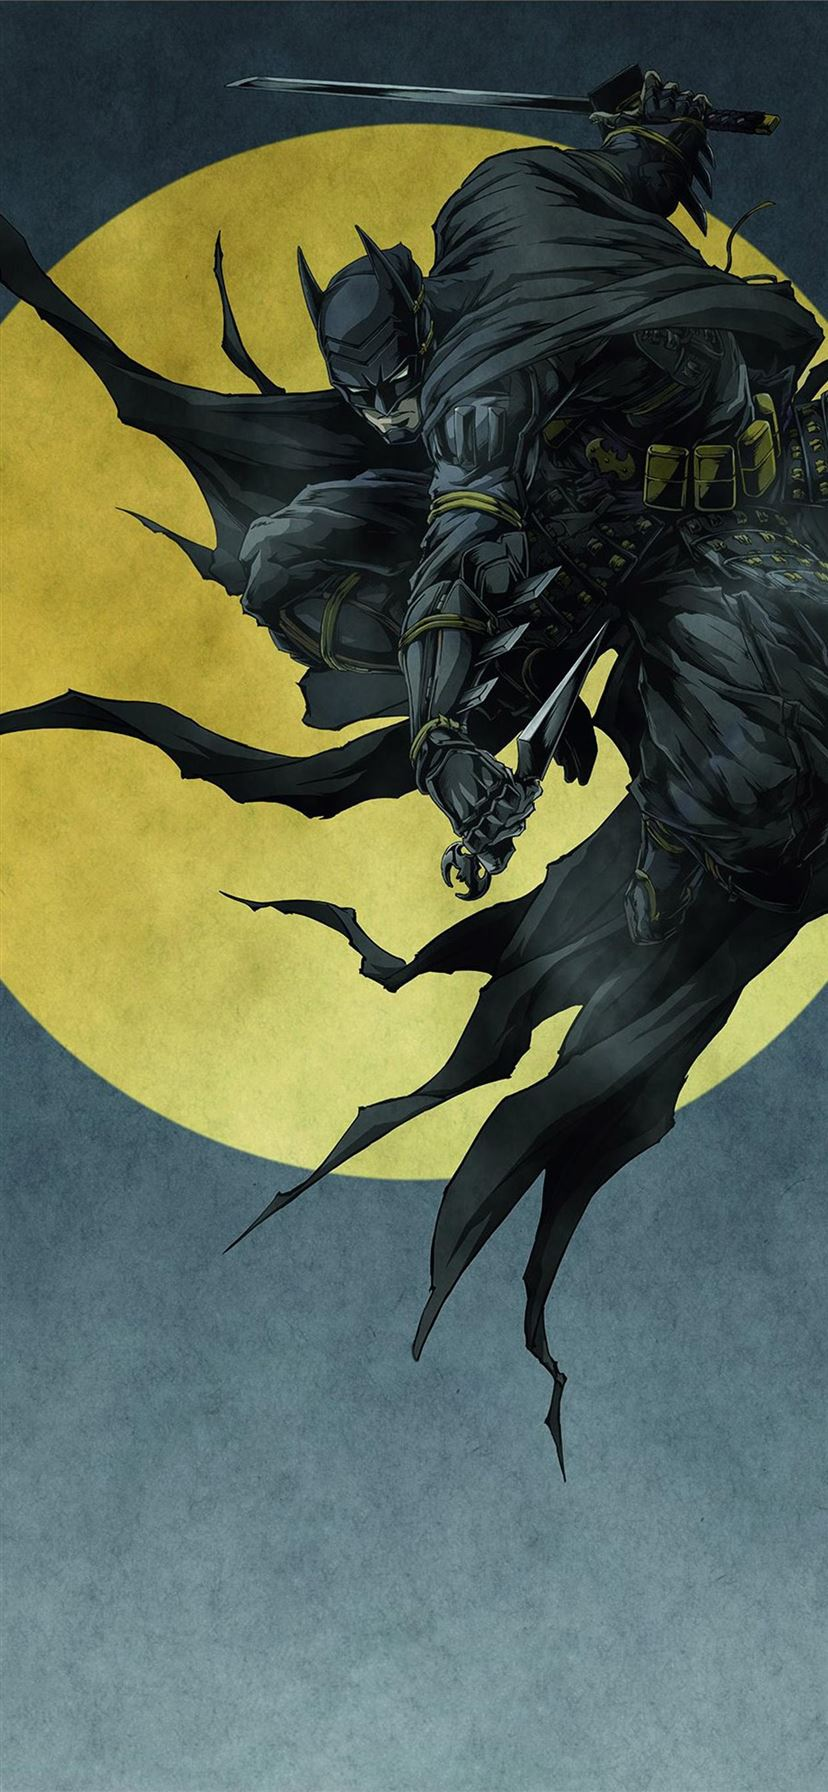 19 Batman Ninja On Afari Iphone 11 Wallpapers Free Download